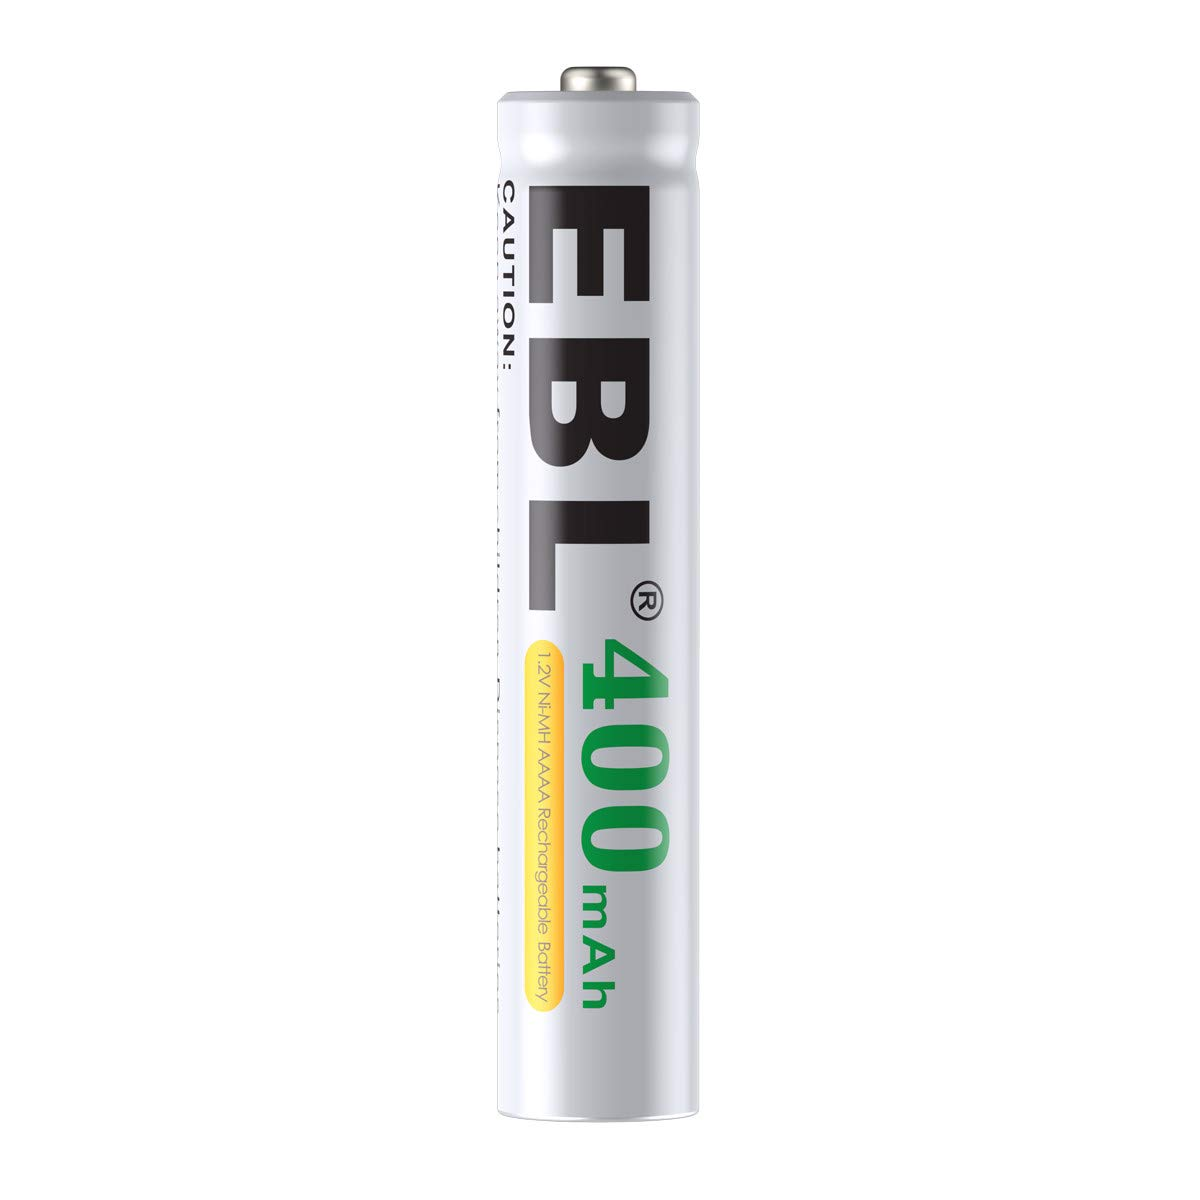 EBL AAAA Batteries, AAAA Rechargeable Battery 1.2V Ni-MH 400mAh for Surface Pen, 12-Pack